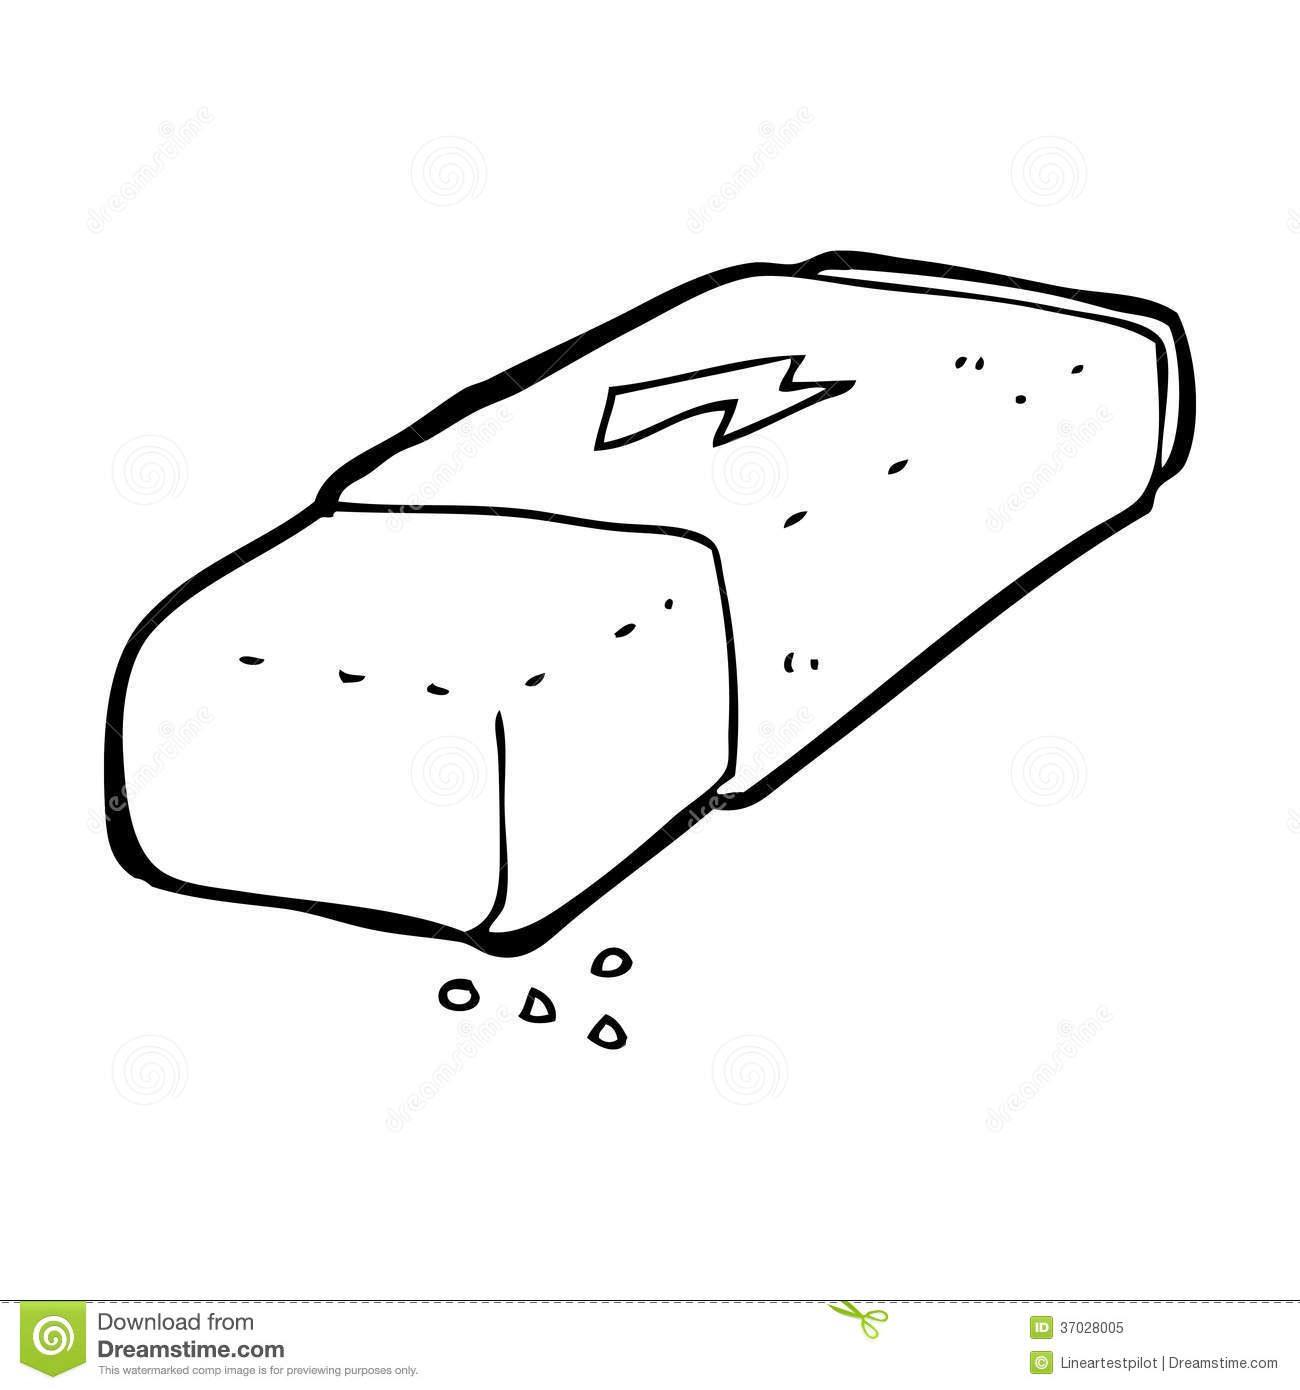 cartoon pencil eraser stock illustration illustration of eraser 37028005 dreamstime com